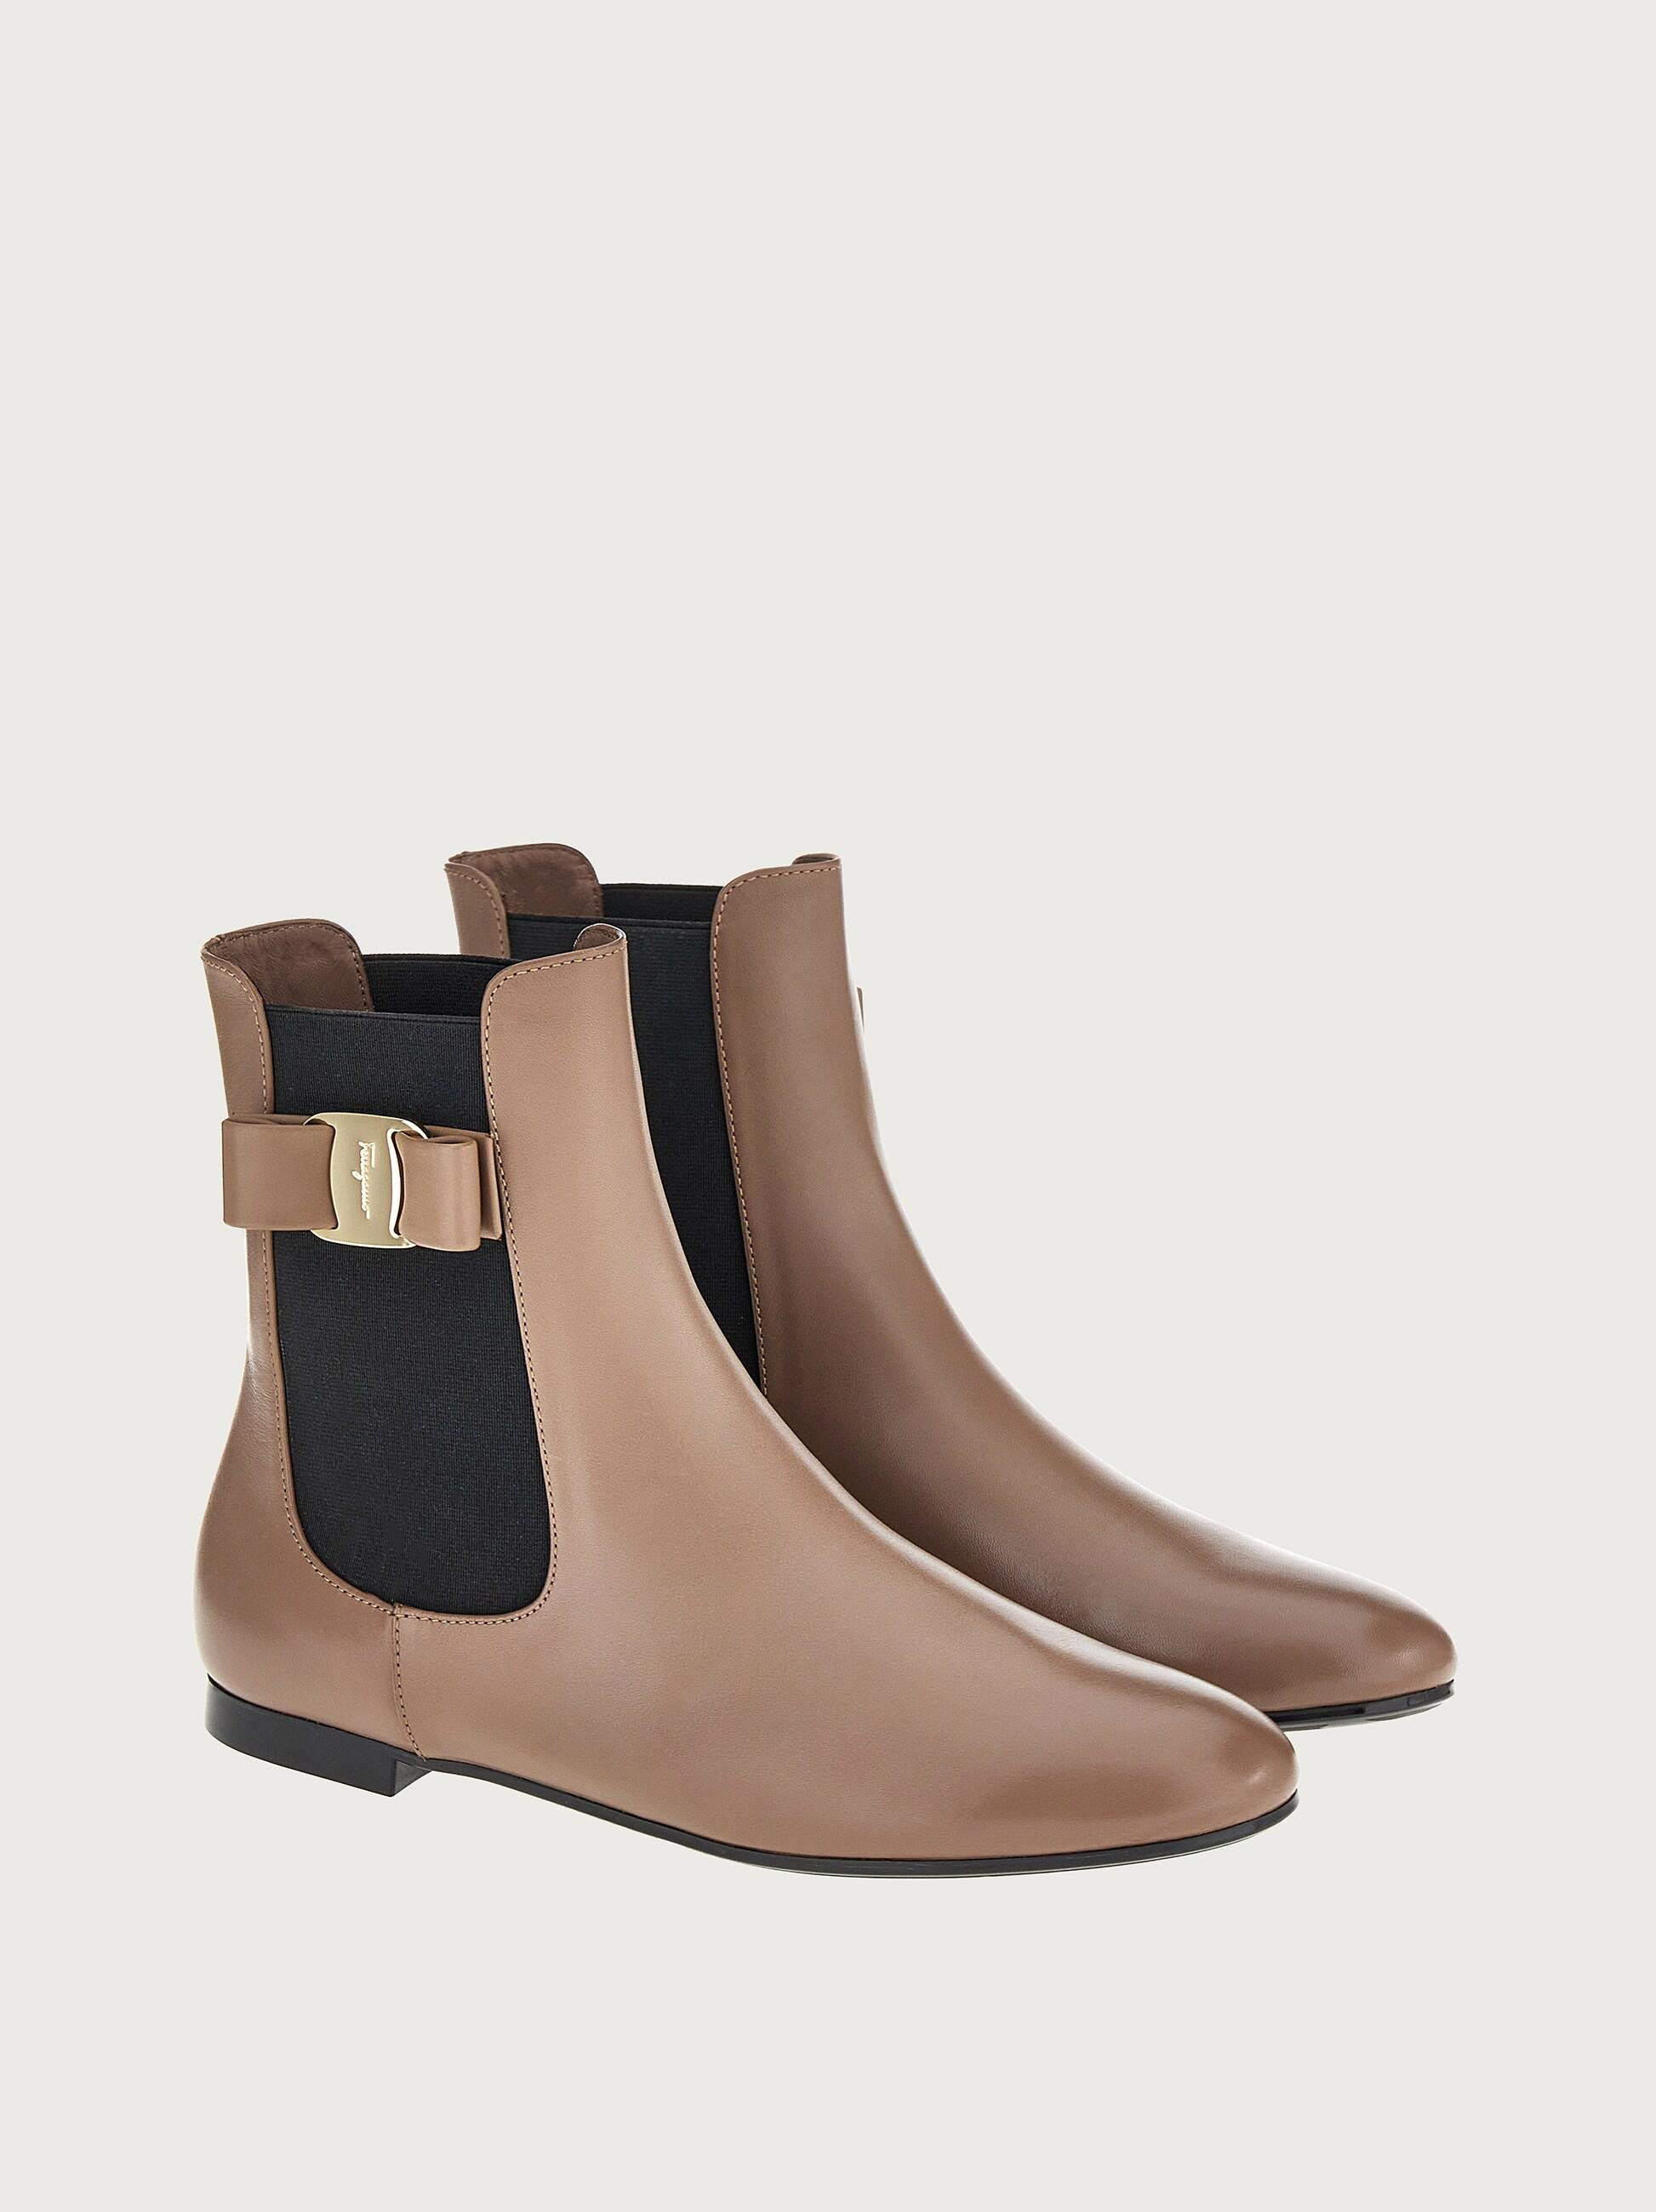 CHELSEA BOOT WITH VARA BOW 1